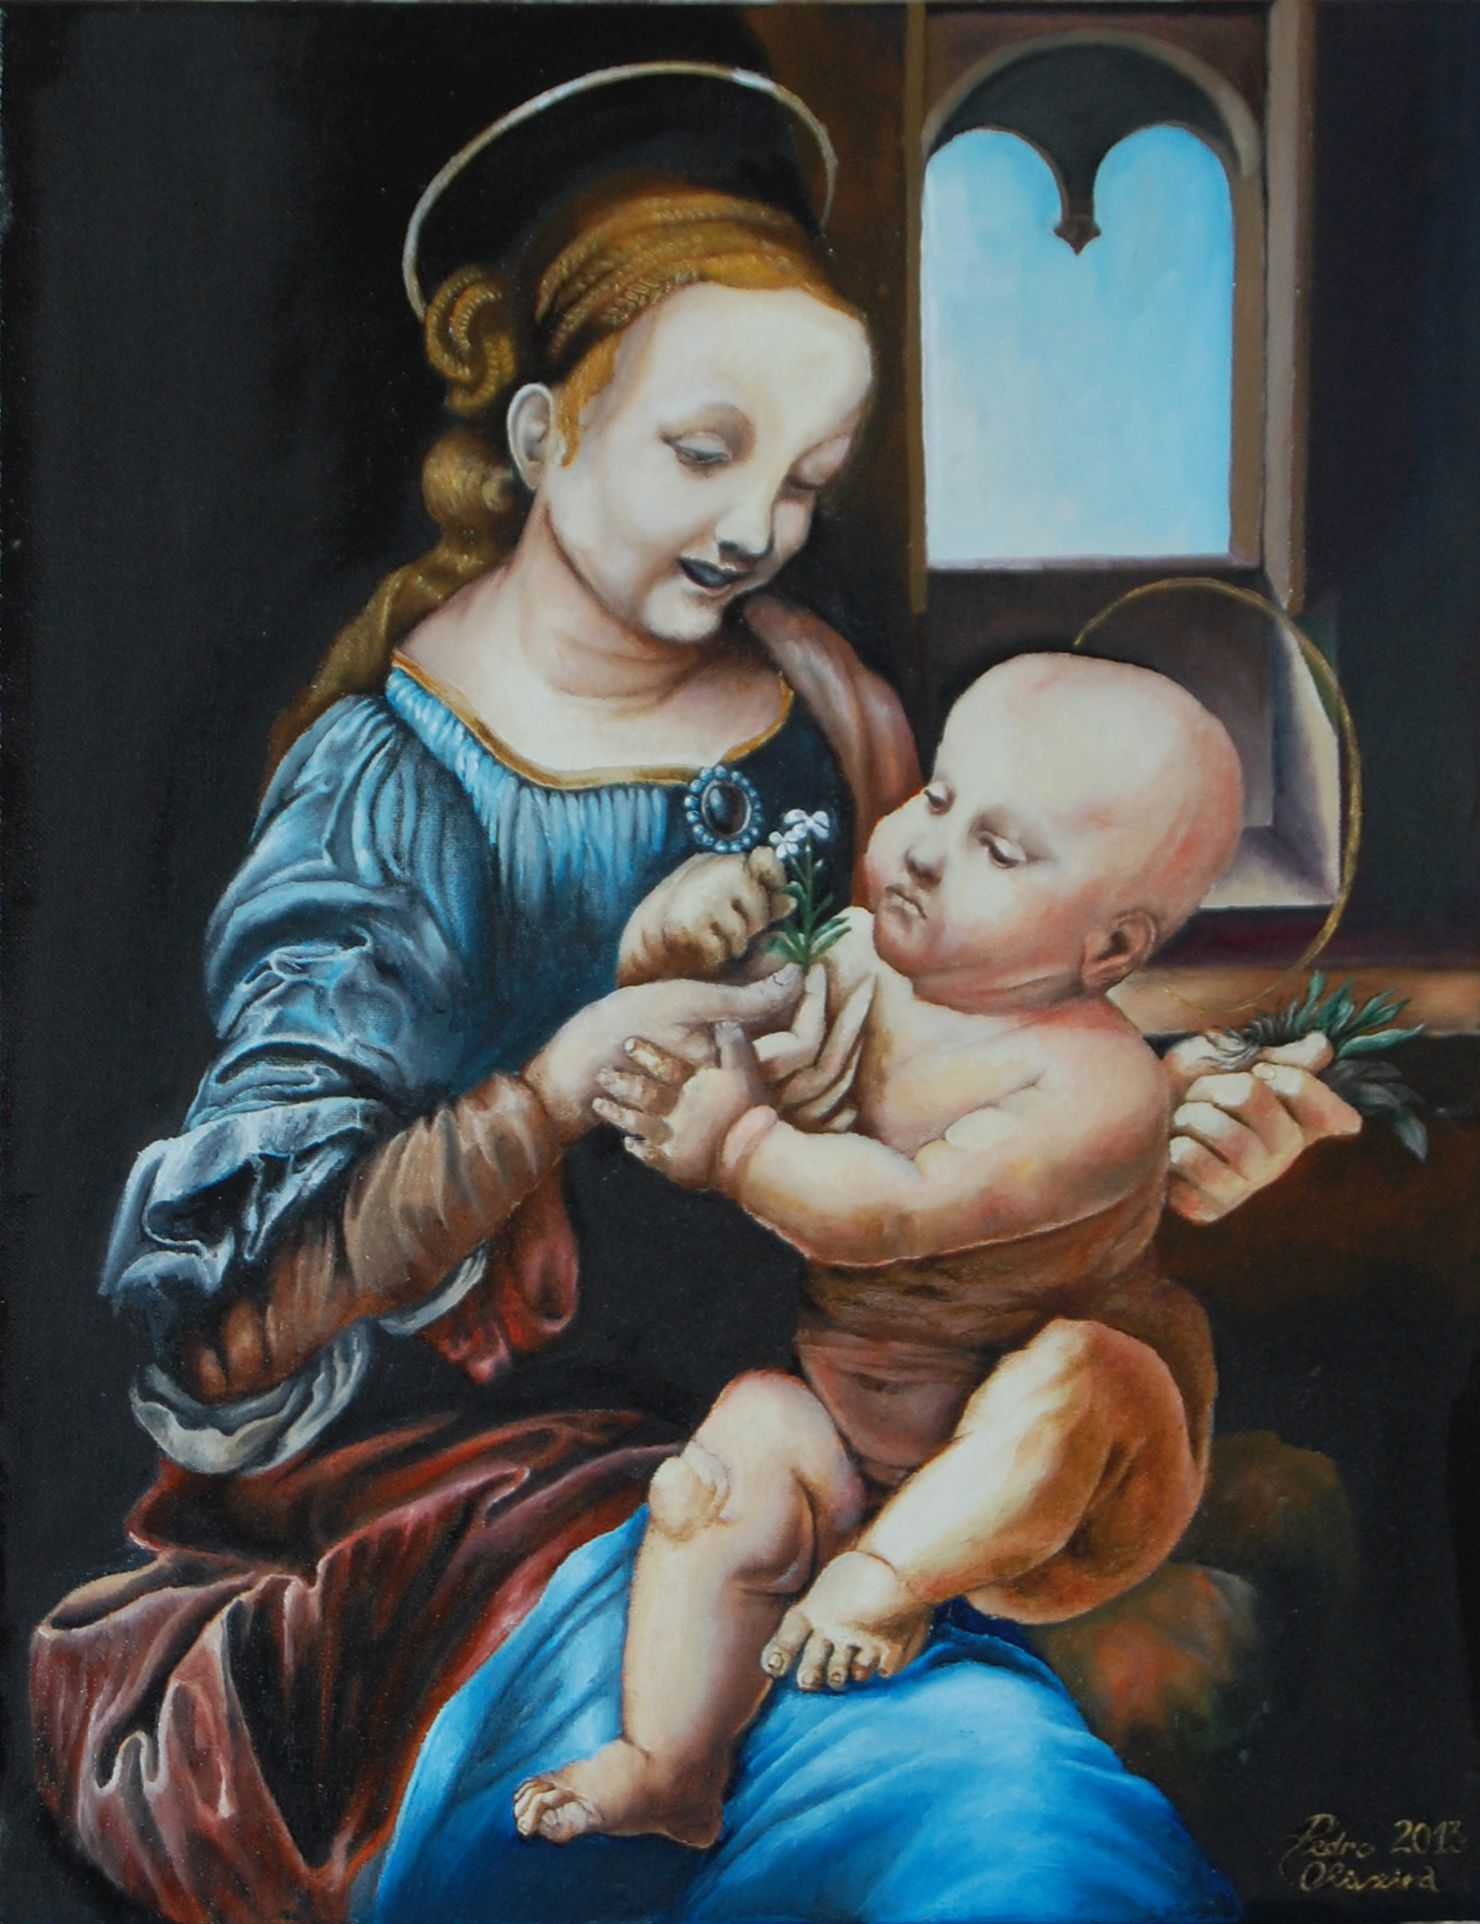 Claudia-art-gallery-oil-painting-madonna-and-child